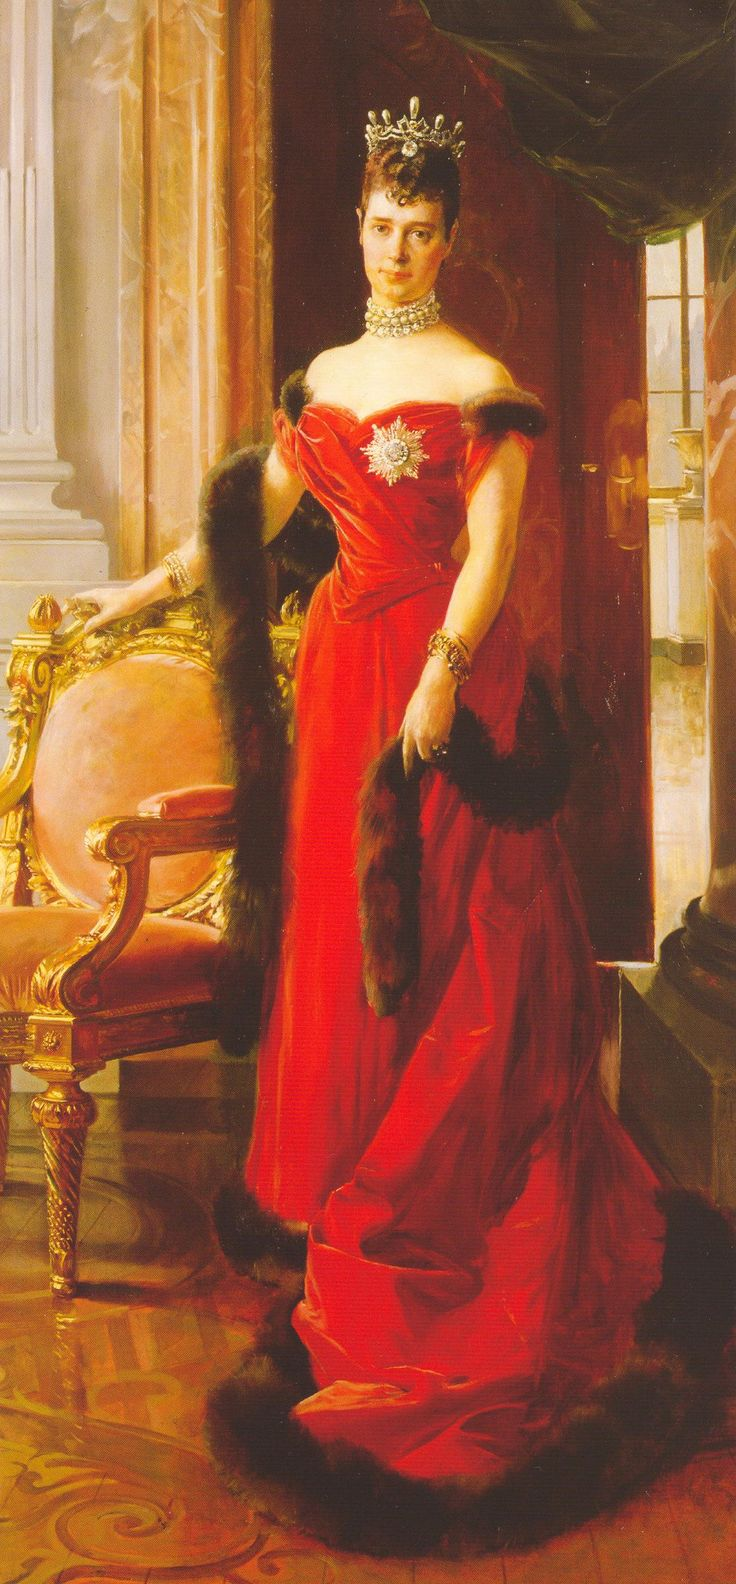 Evening wear of the 1890s did not always use leg-o-mutton sleeves as can be seen in this Flameng portrait of Maria Feodorovna.